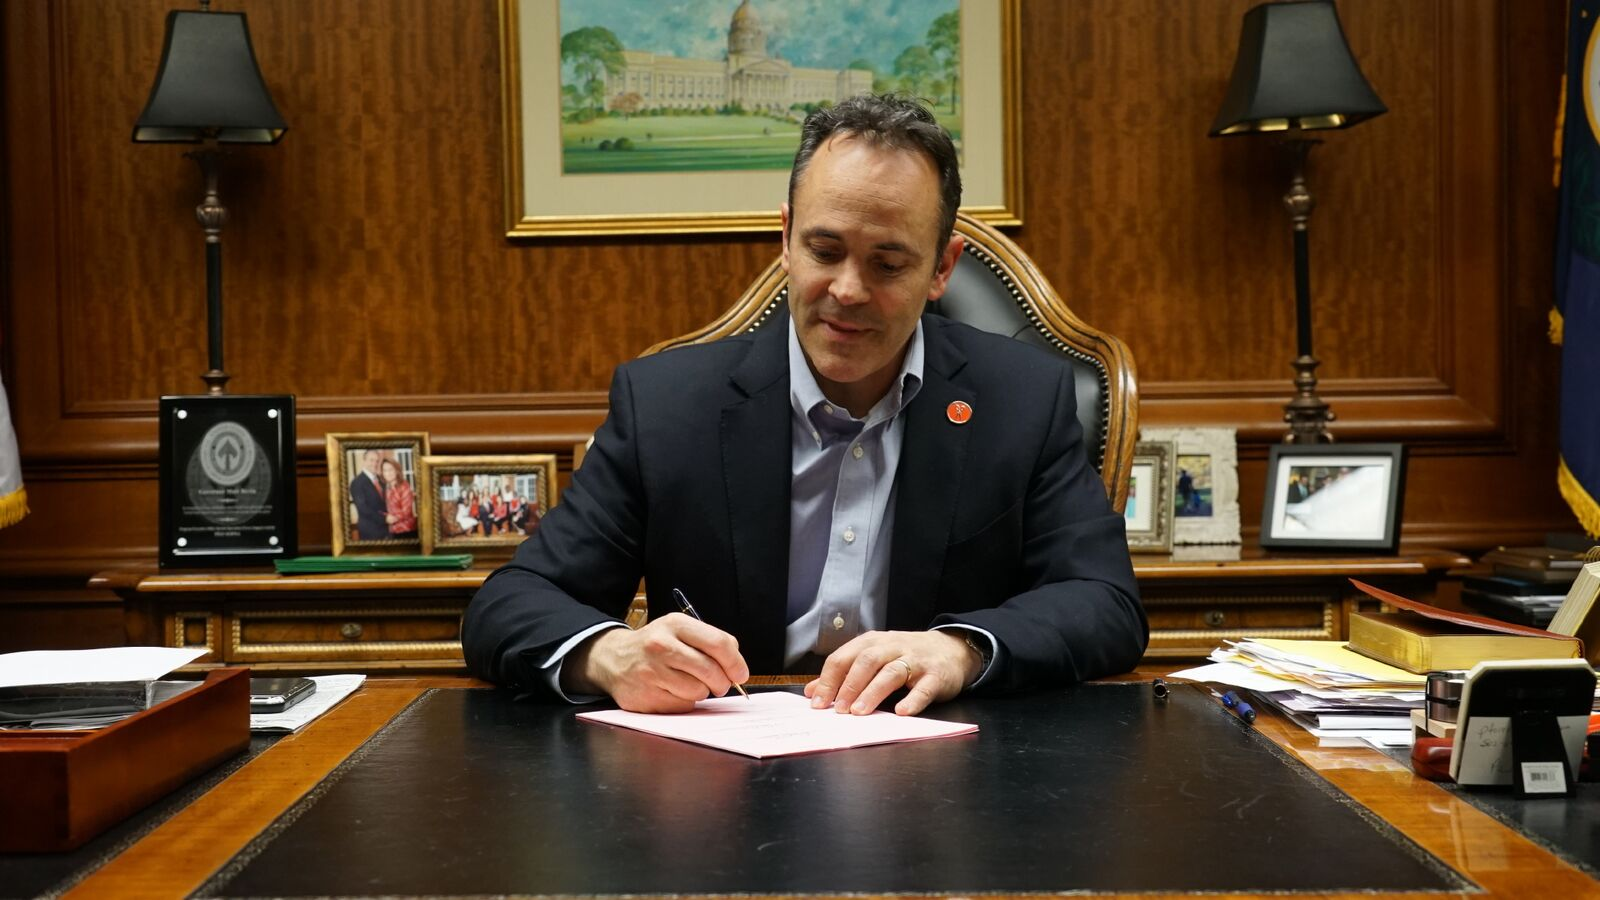 Gov. Matt Bevin has signed into law seven historic bills sent to his desk by the Kentucky General Assembly, following a record-setting first week of work in Frankfort (Photo Provided)